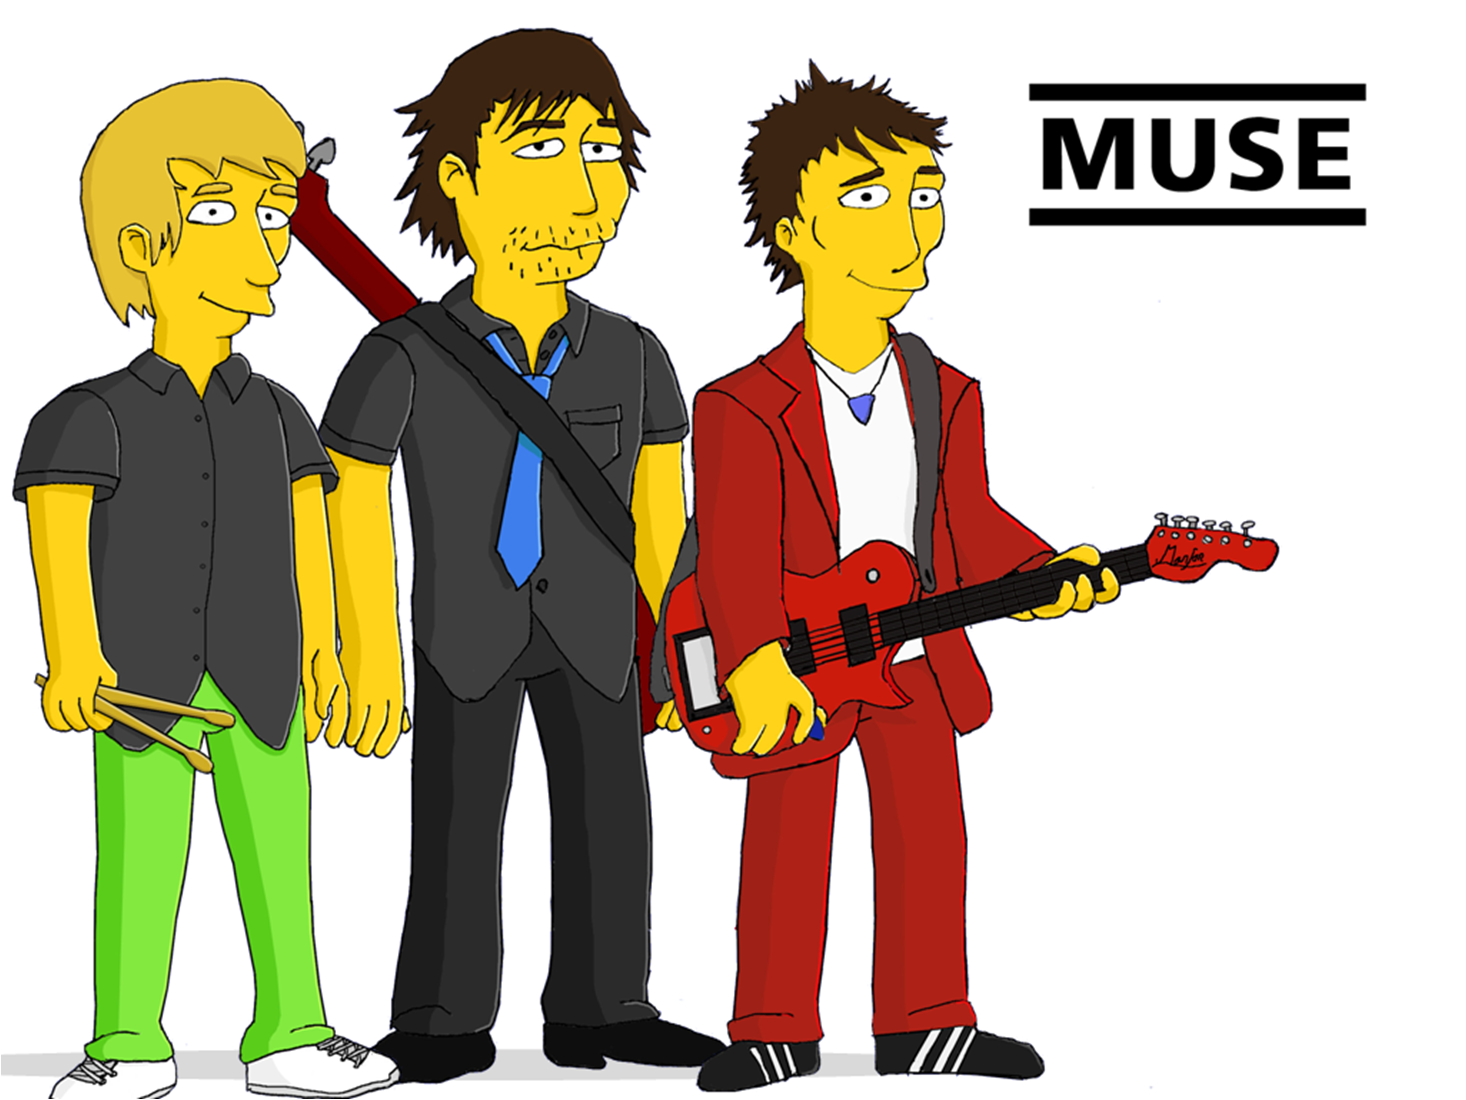 muse.png